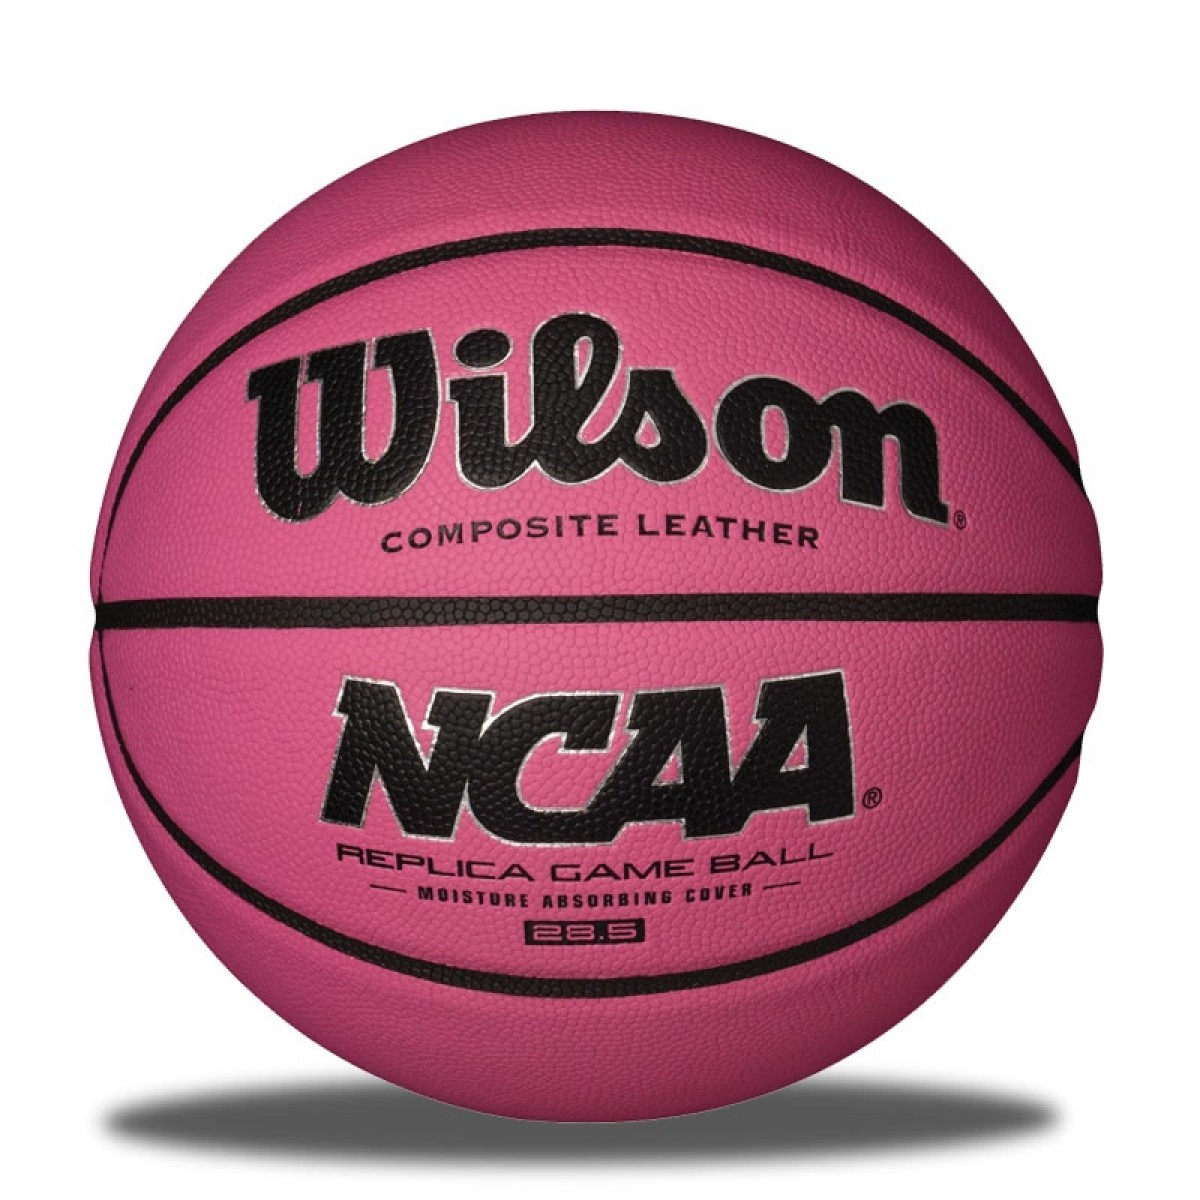 Wilson NCAA Replica Game Ball 'Pink'